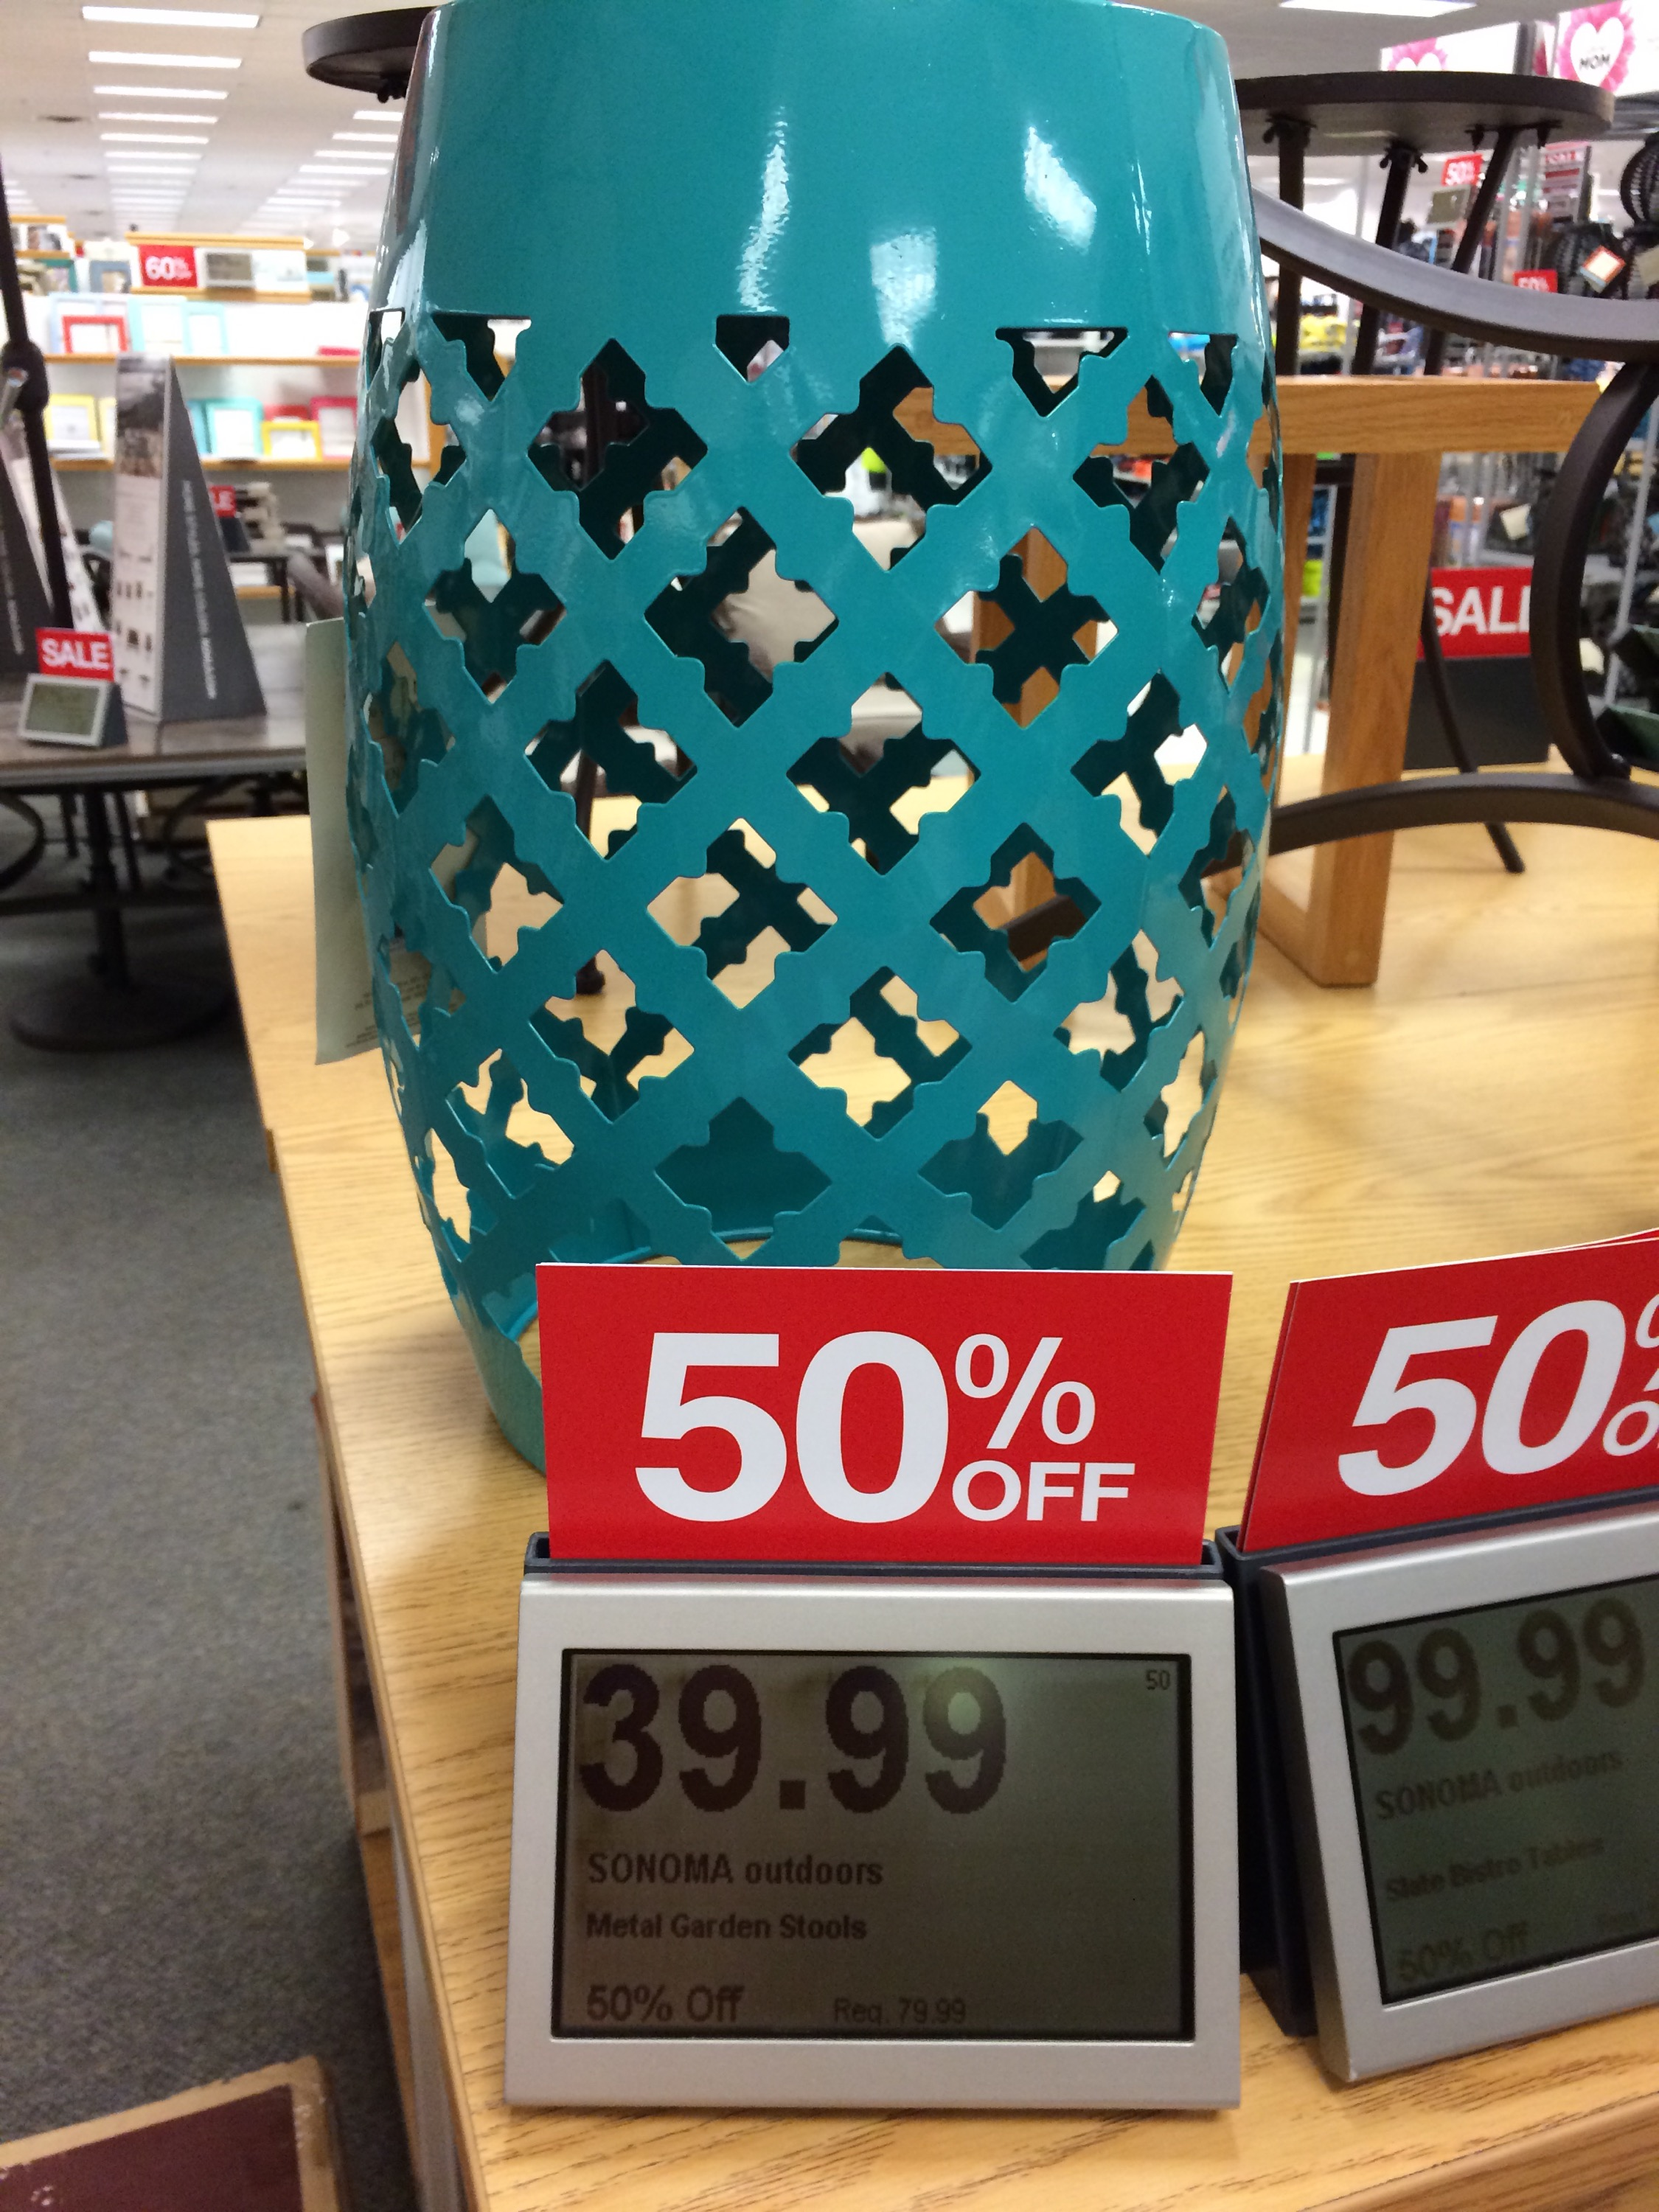 Terrific Hot Kohls Friends Family Event Save On Curtains Ncnpc Chair Design For Home Ncnpcorg